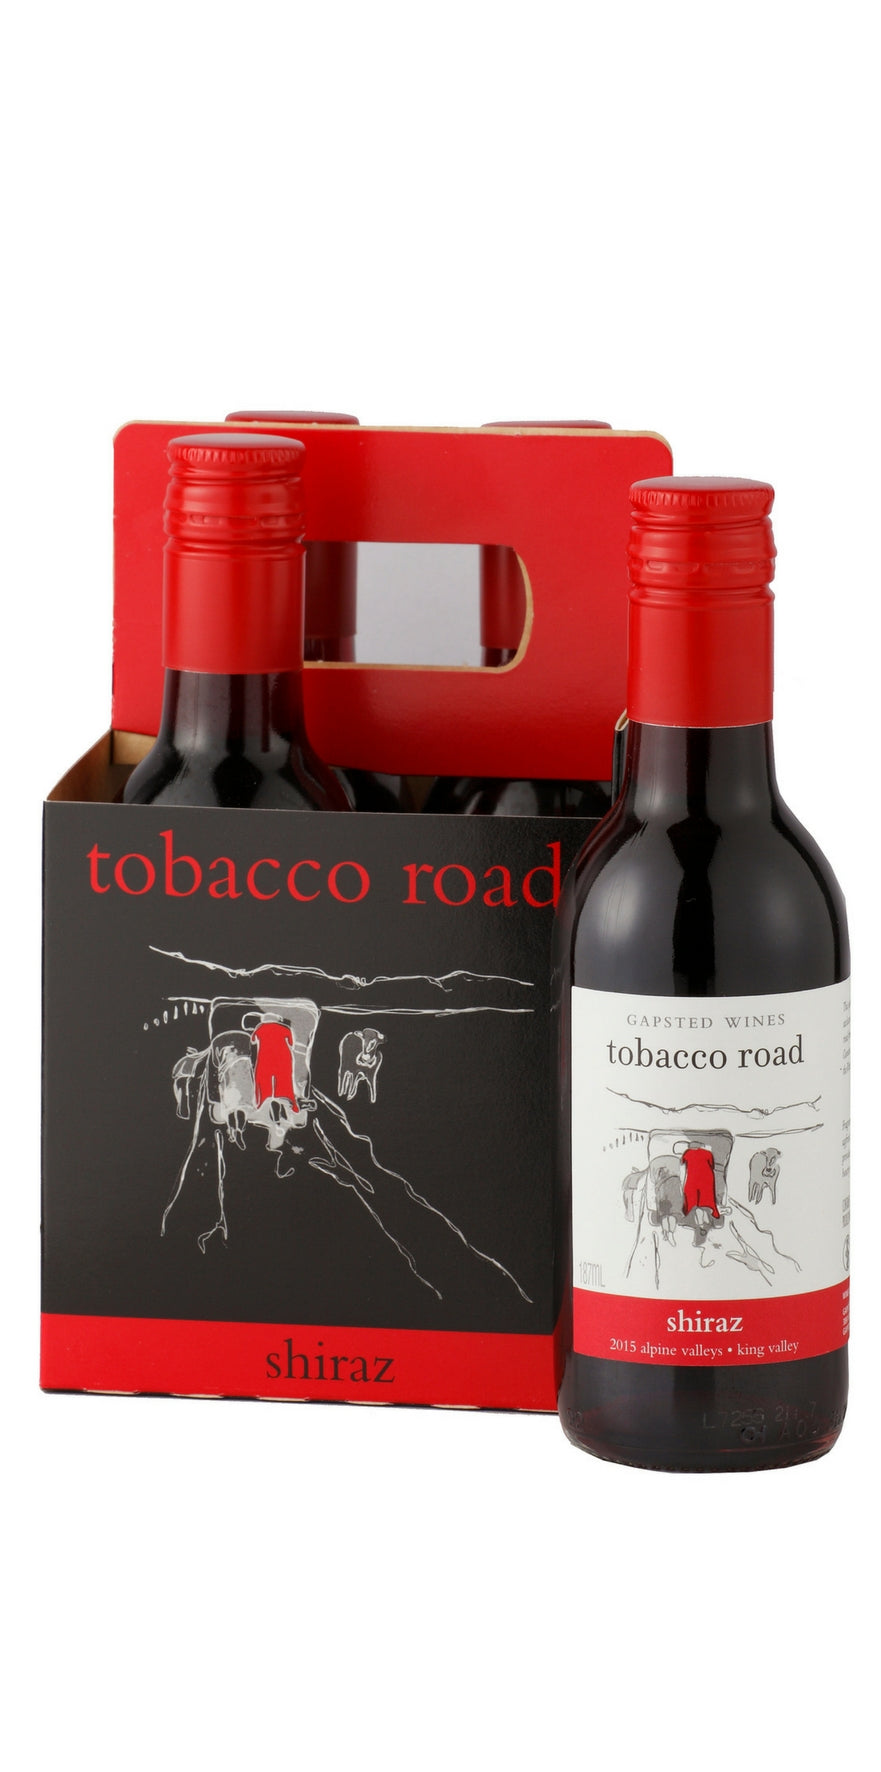 Tobacco Road 2015 Shiraz - 4 x 187ml - Gapsted Wines